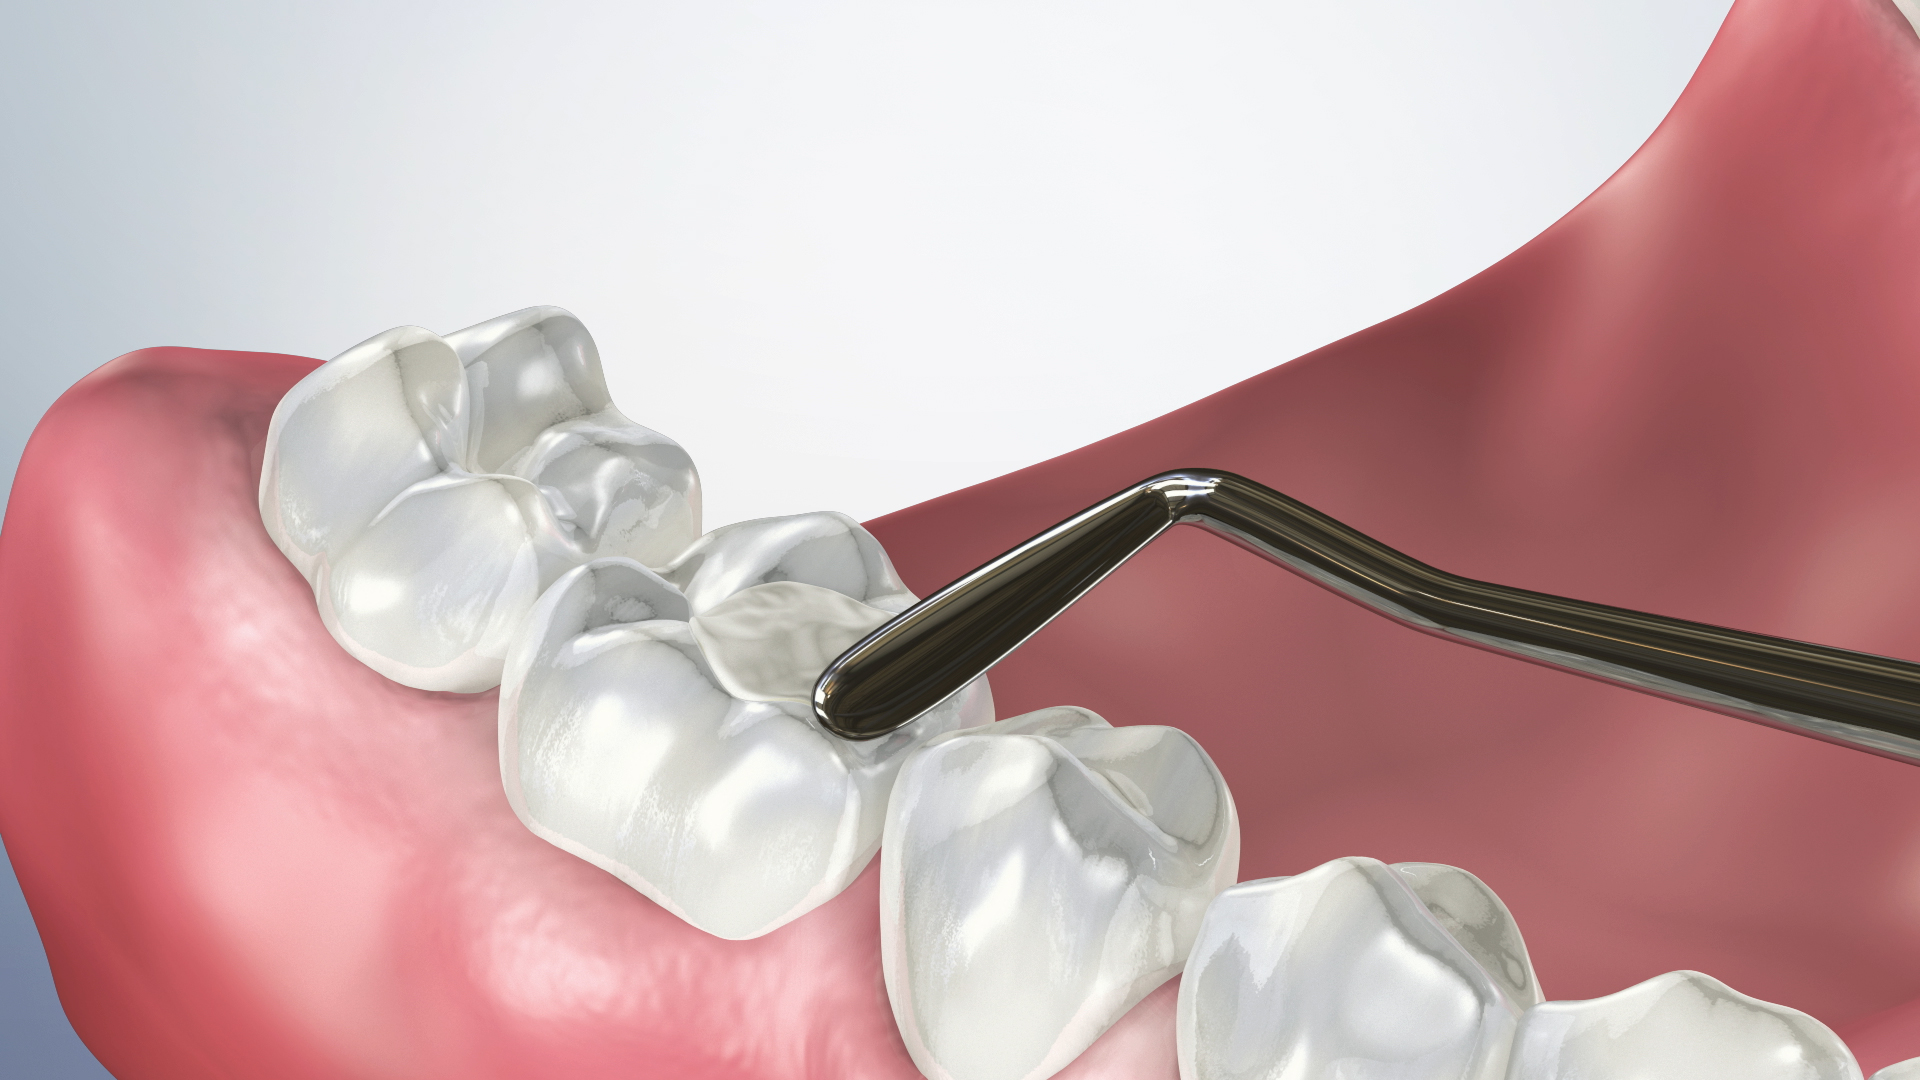 Thumbnail for a video on Post-Operative Instructions for a Composite Filling